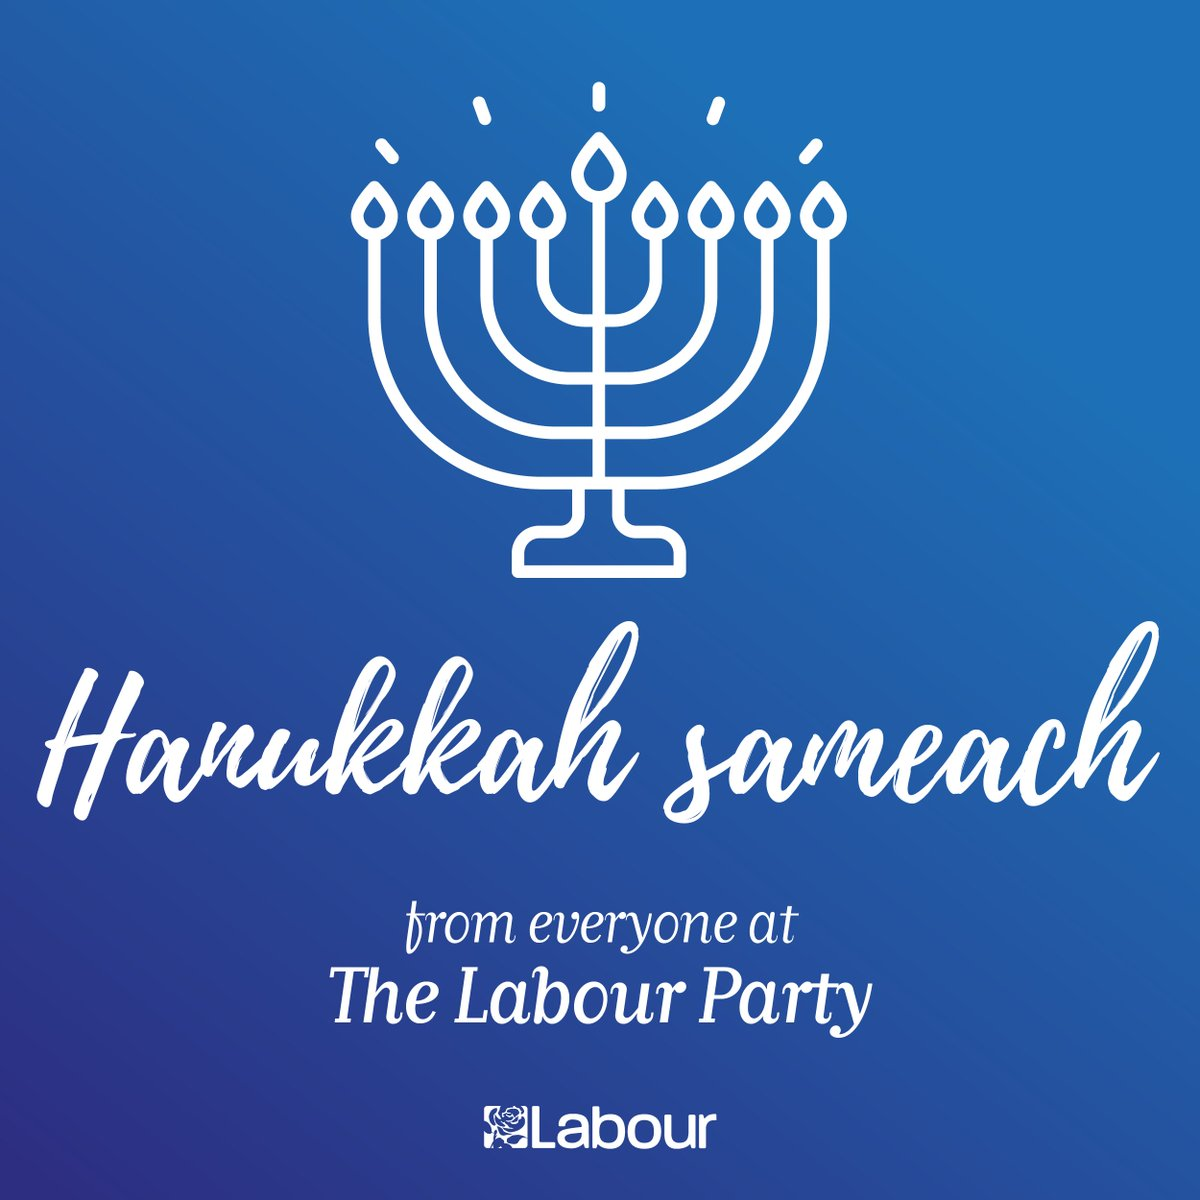 As Jewish people here in Britain and all over the world light the first candle of the menorah this evening, we wish you all a very happy #Hanukkah.